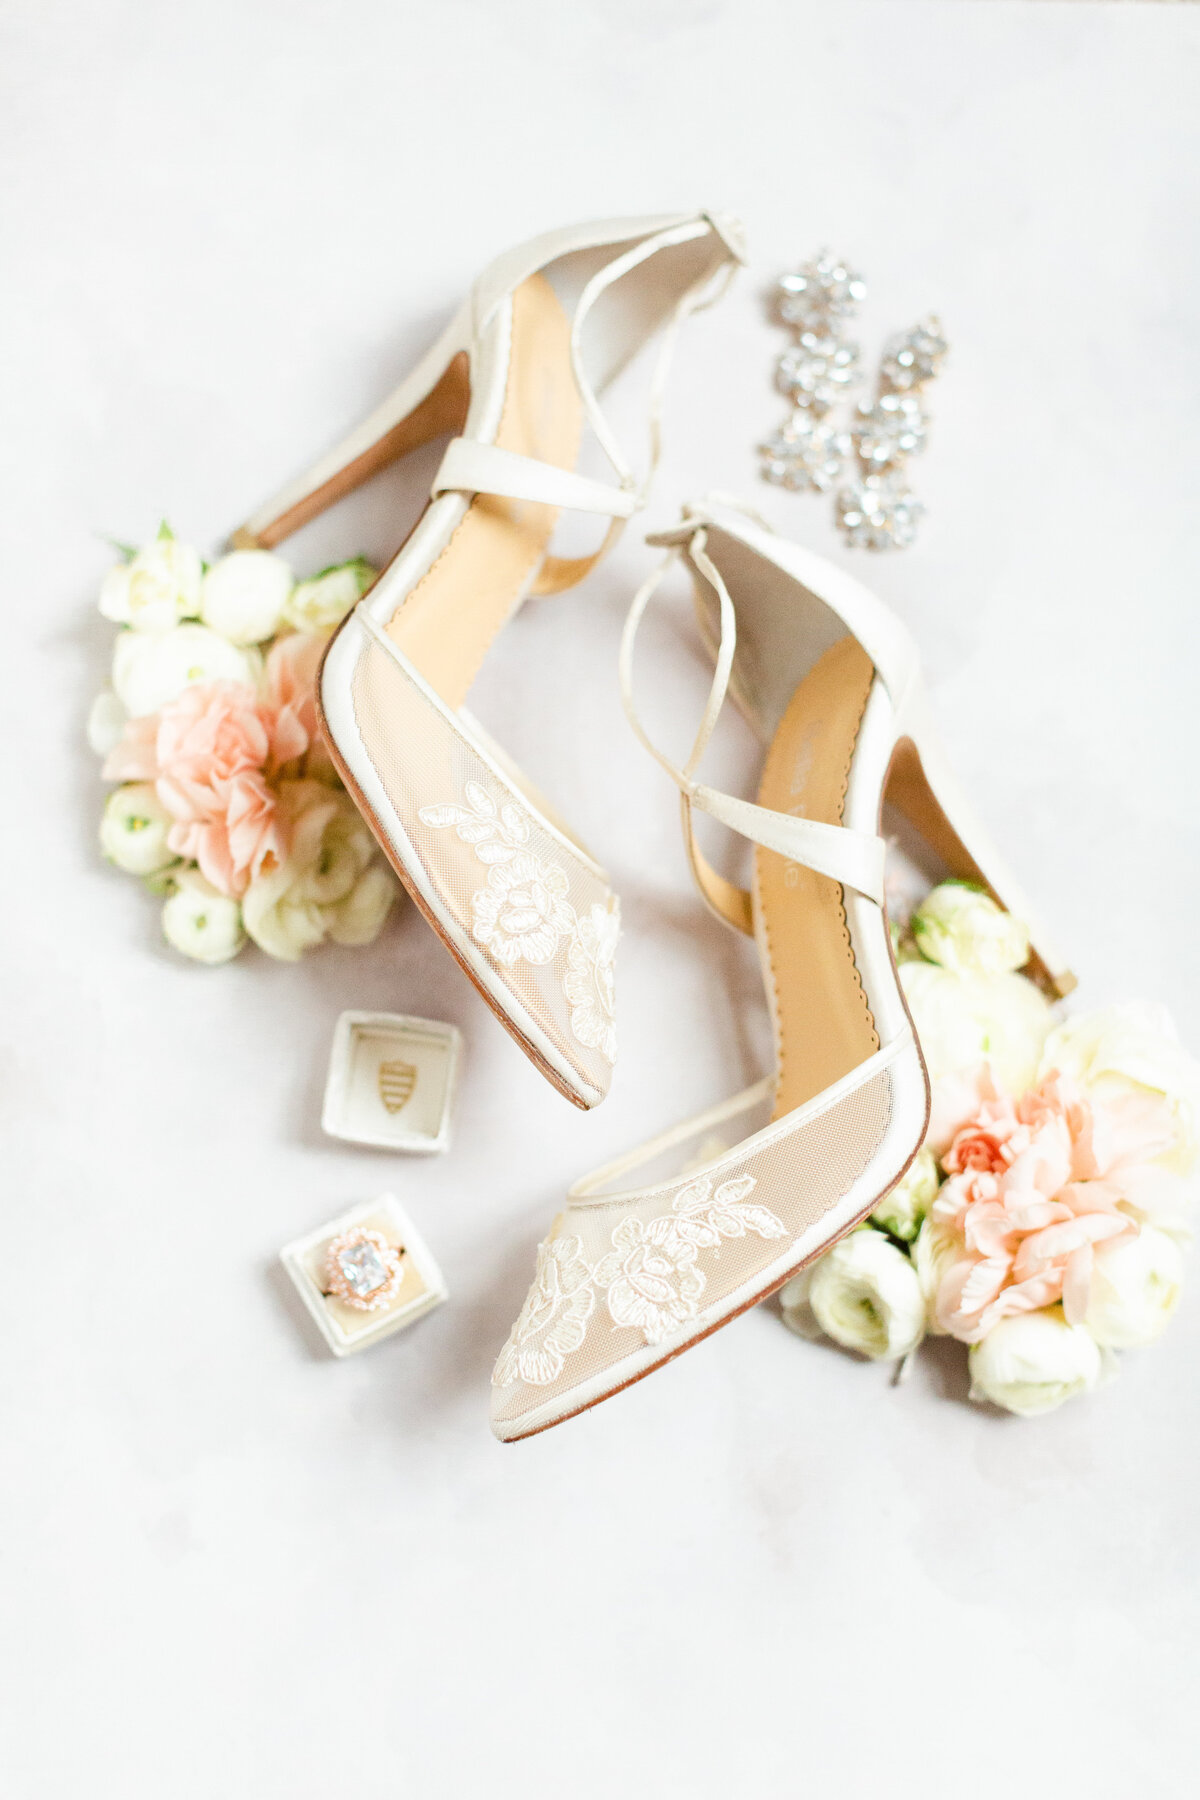 Bella Belle wedding shoes at a wedding in Ohio photographed by Ohio wedding Photographers, The Cannons Photography